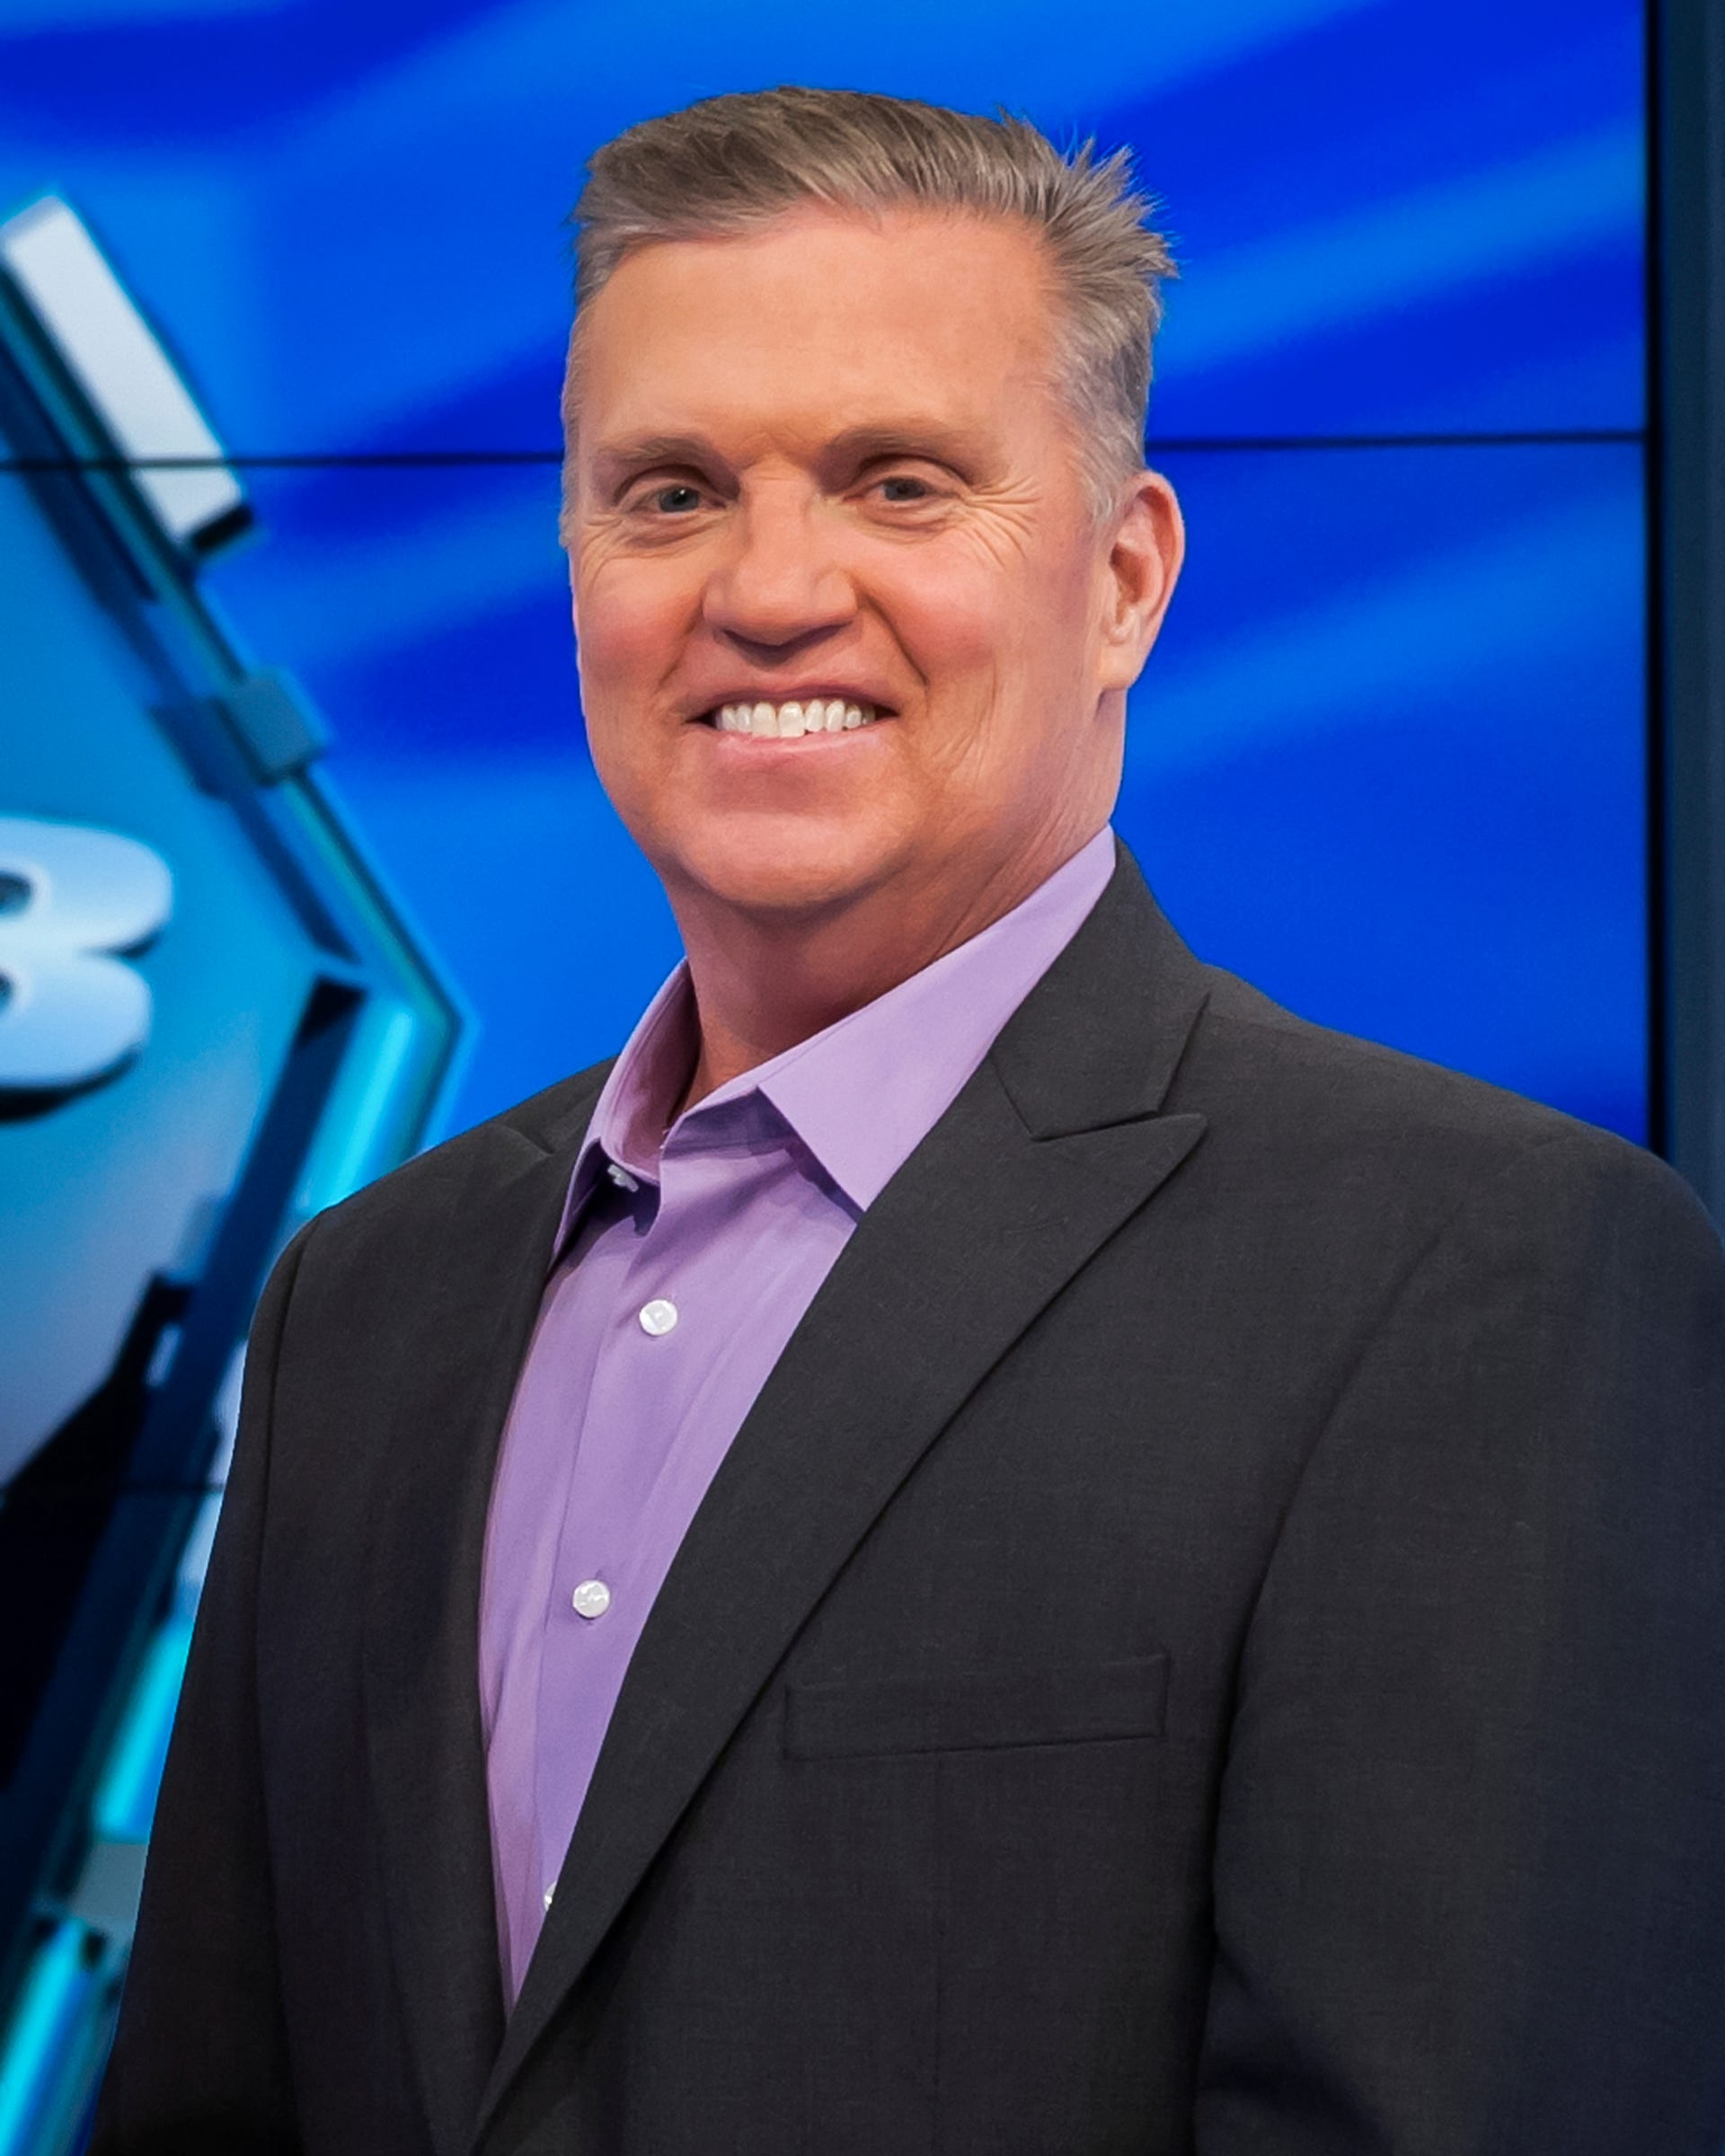 NASCAR announcer Steve Byrnes passed away just two days after the race ...